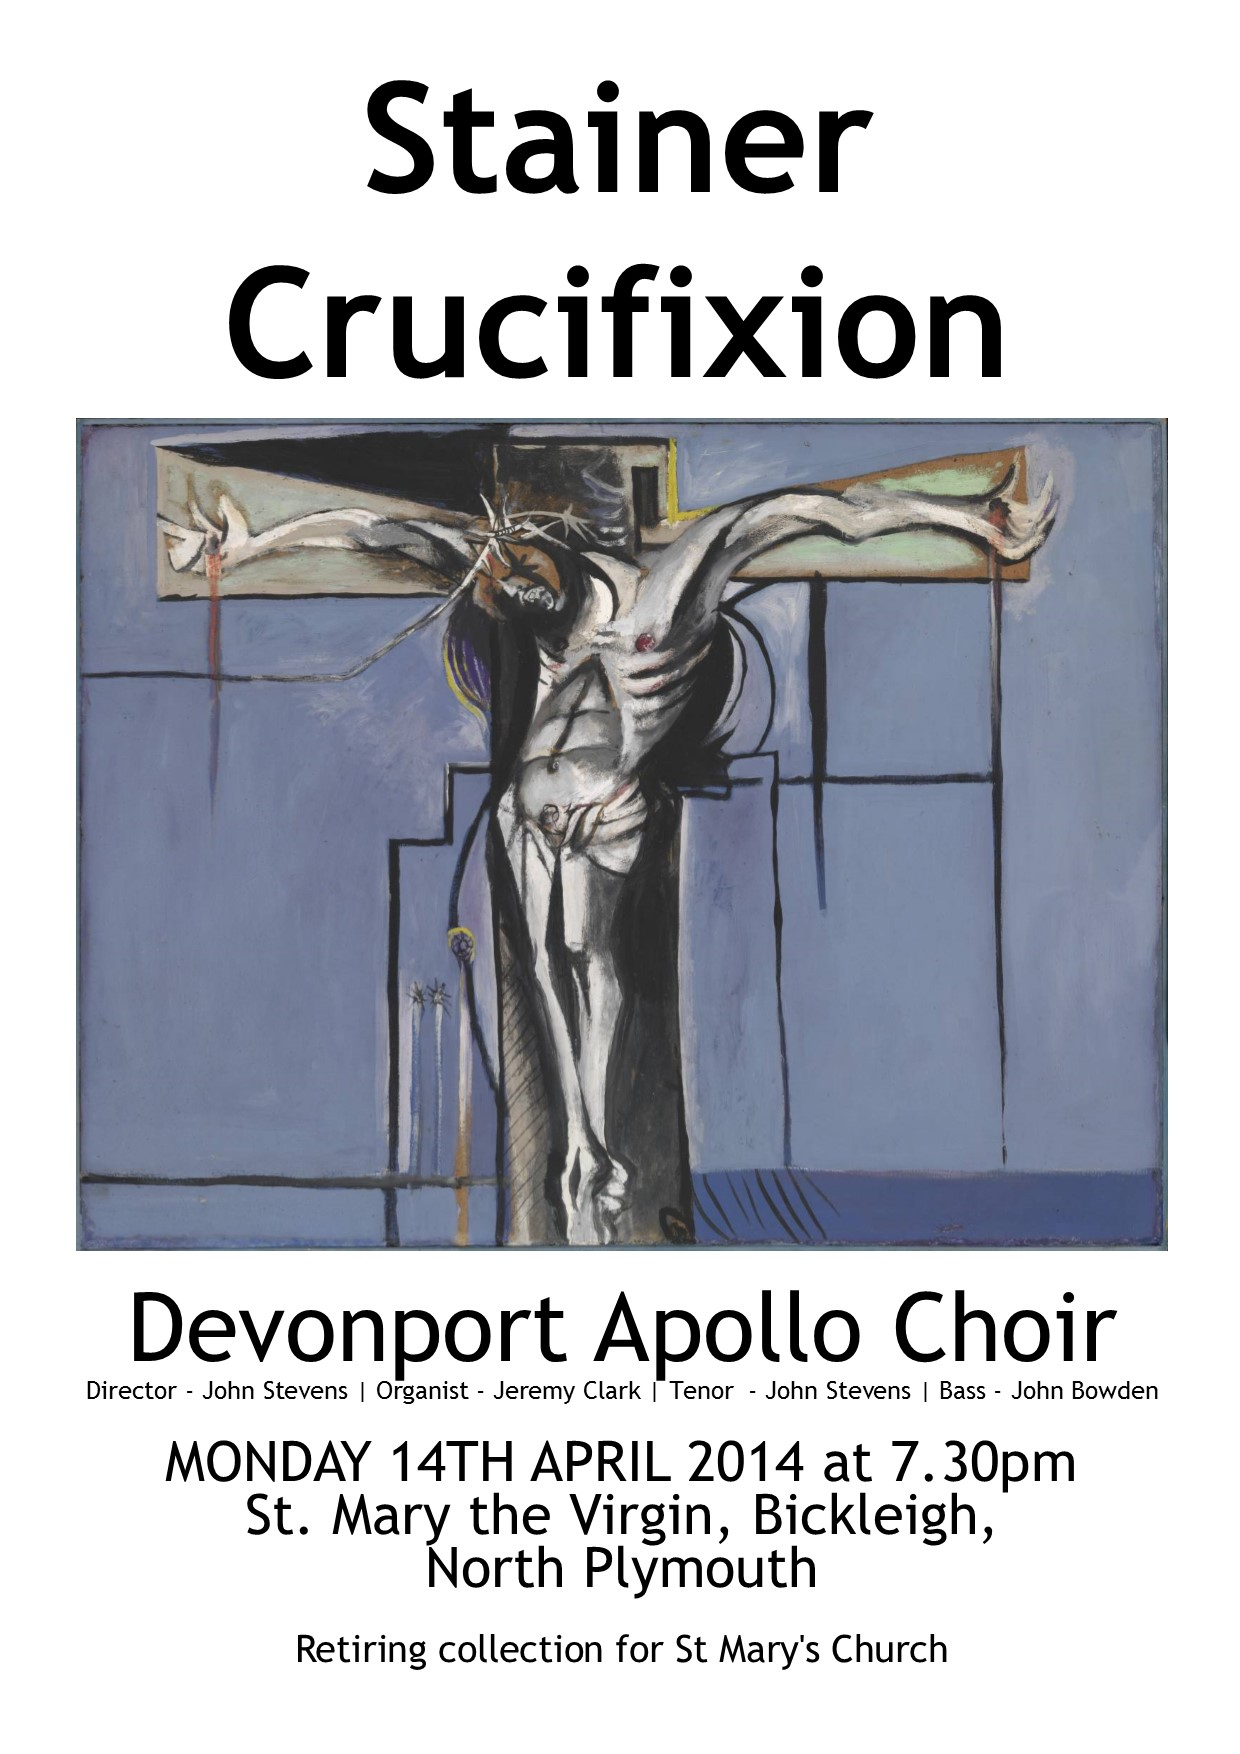 Stainer Crucifixion